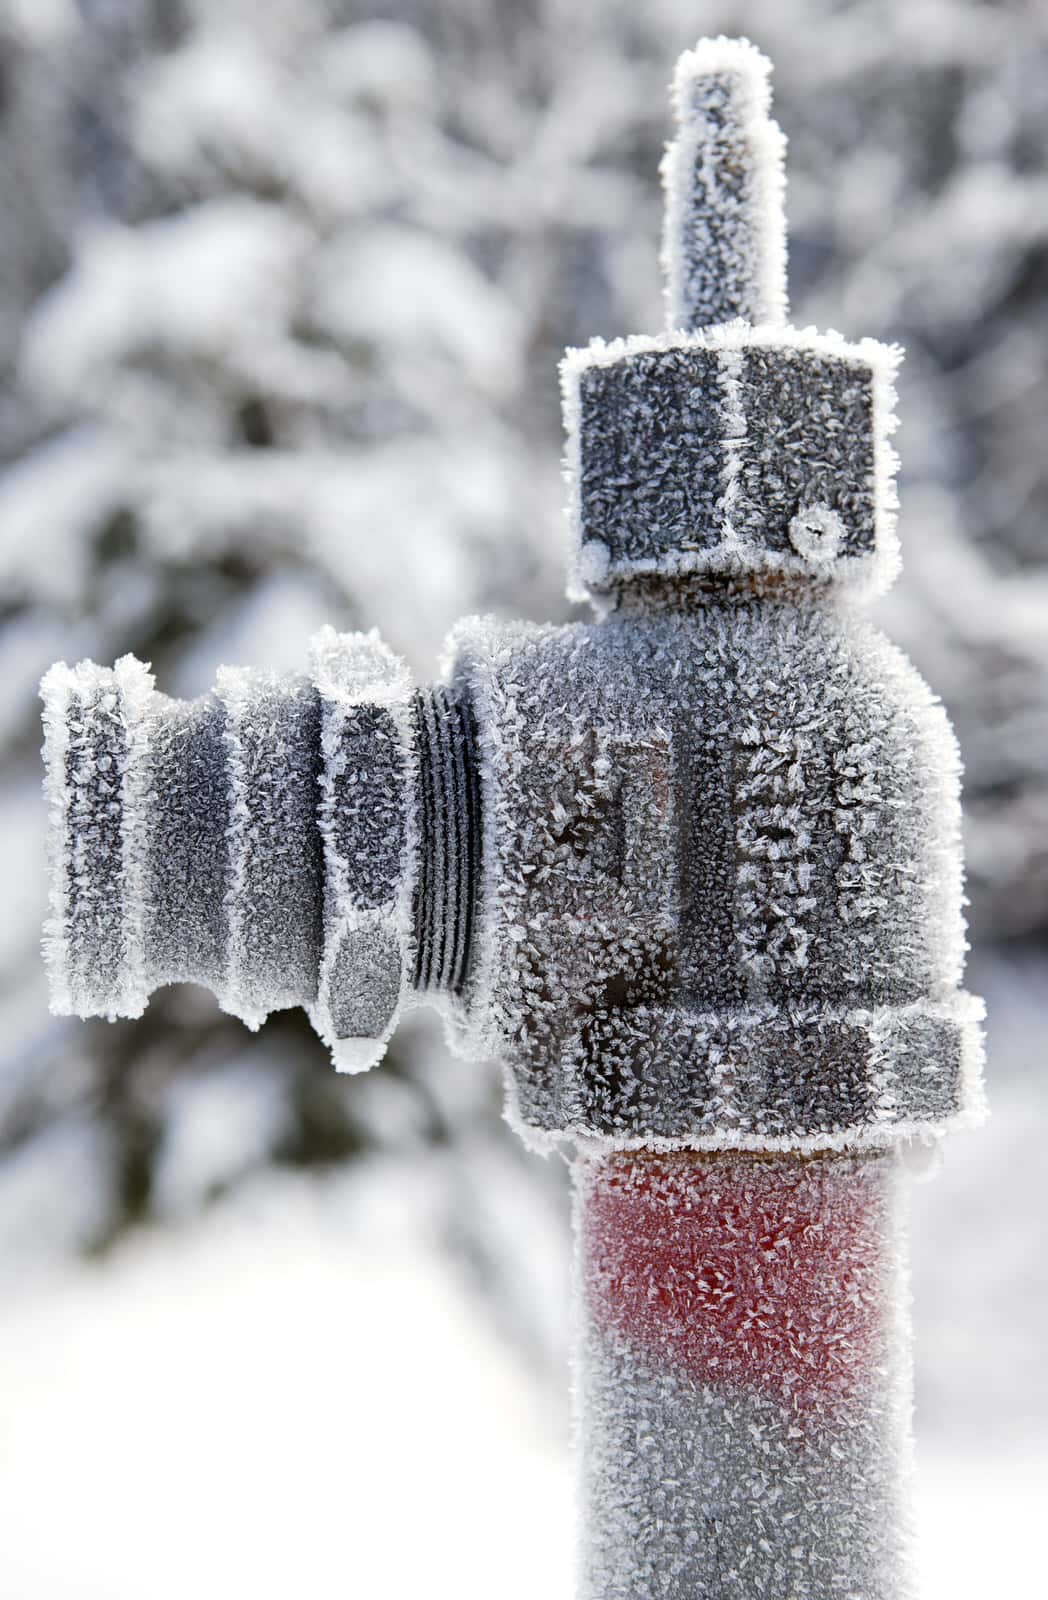 Frost icicles form on the outside of a spigot. How to avoid frozen pipes at home? Follow Kellermeier's 4 steps.